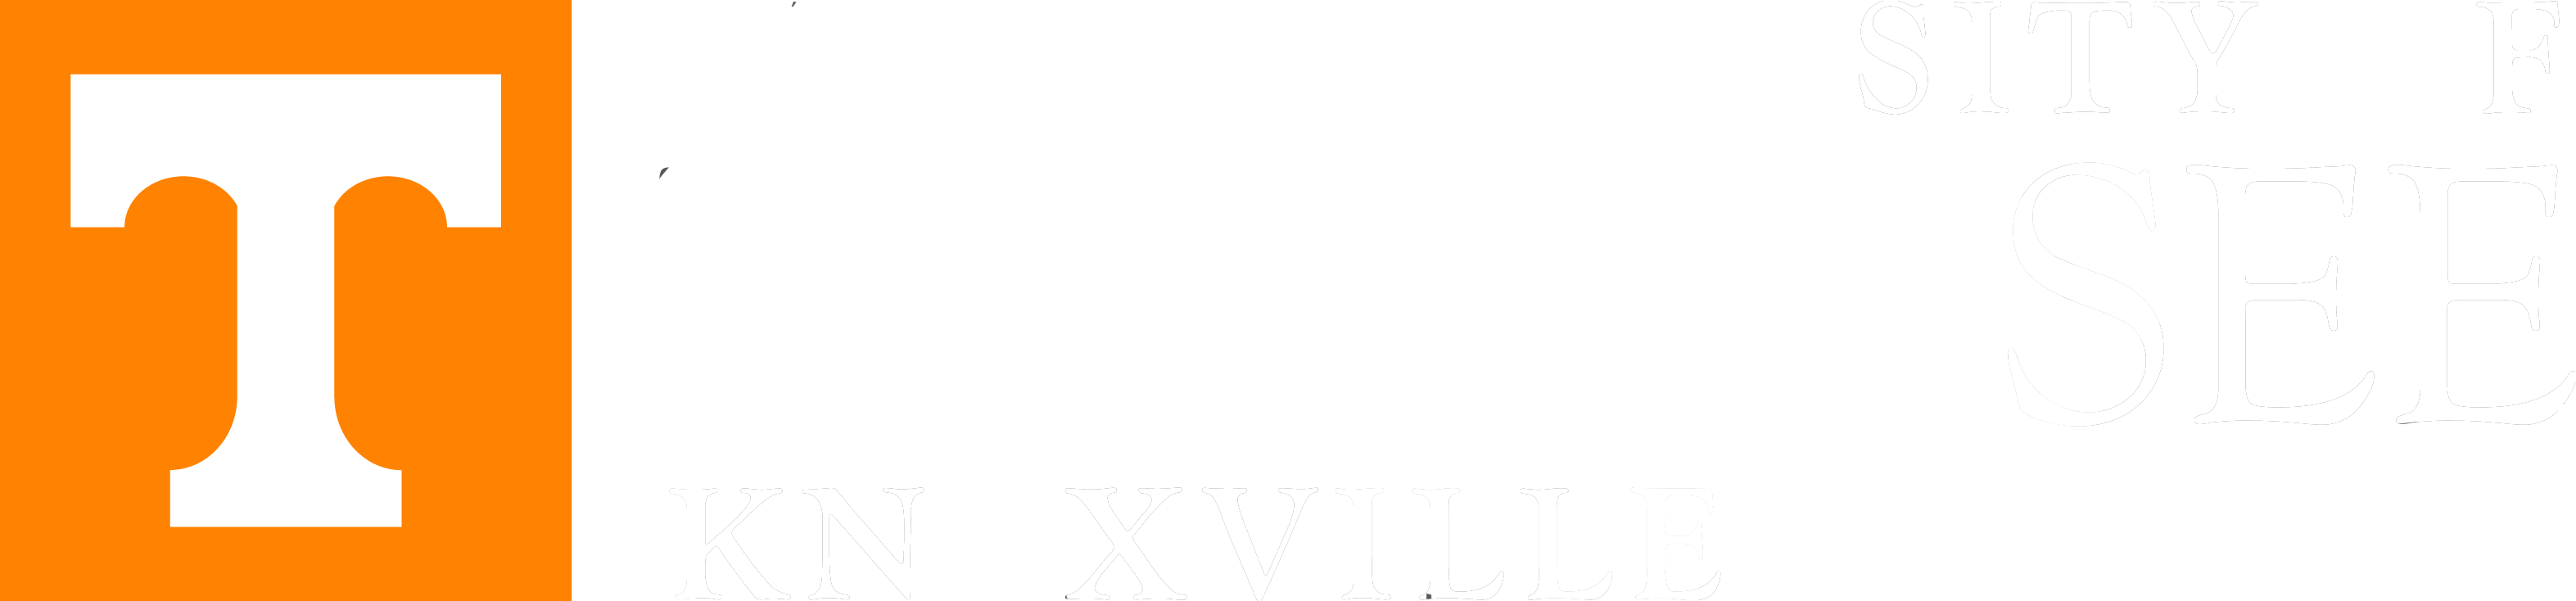 EECS at the University of Tennessee at Knoxville